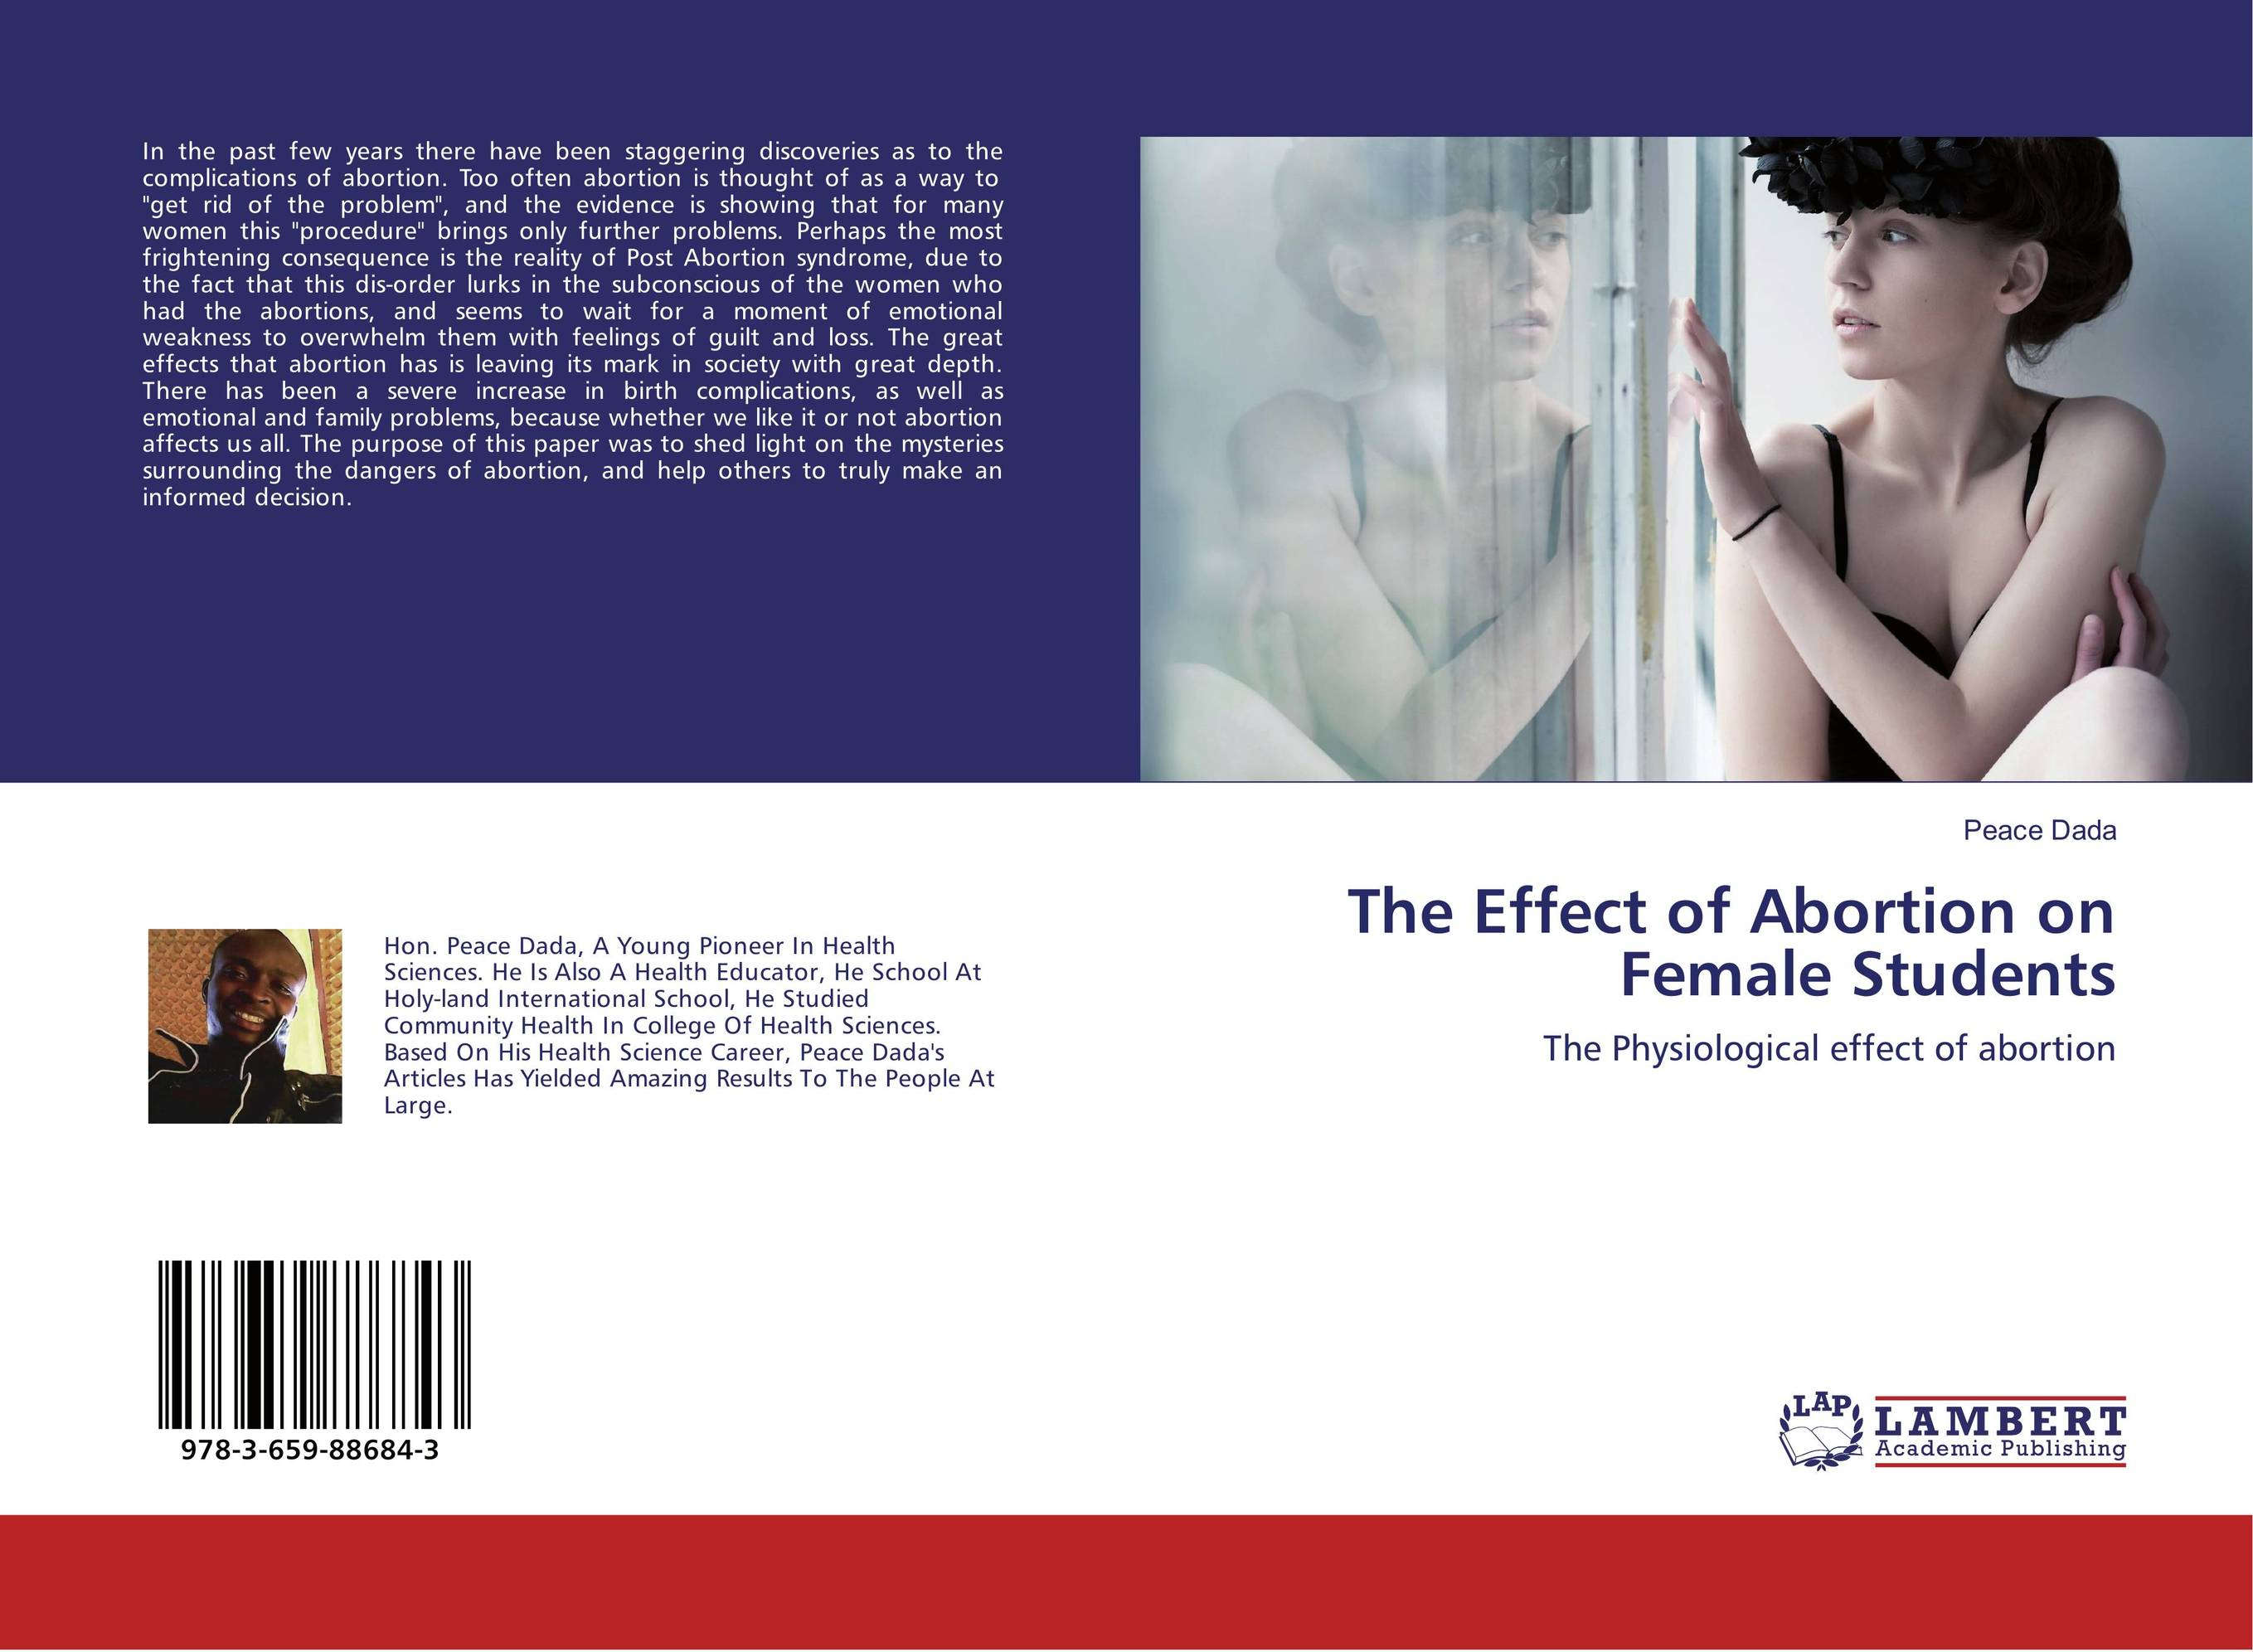 The Effect of Abortion on Female Students helina befekadu the nature and effect of emotional violence